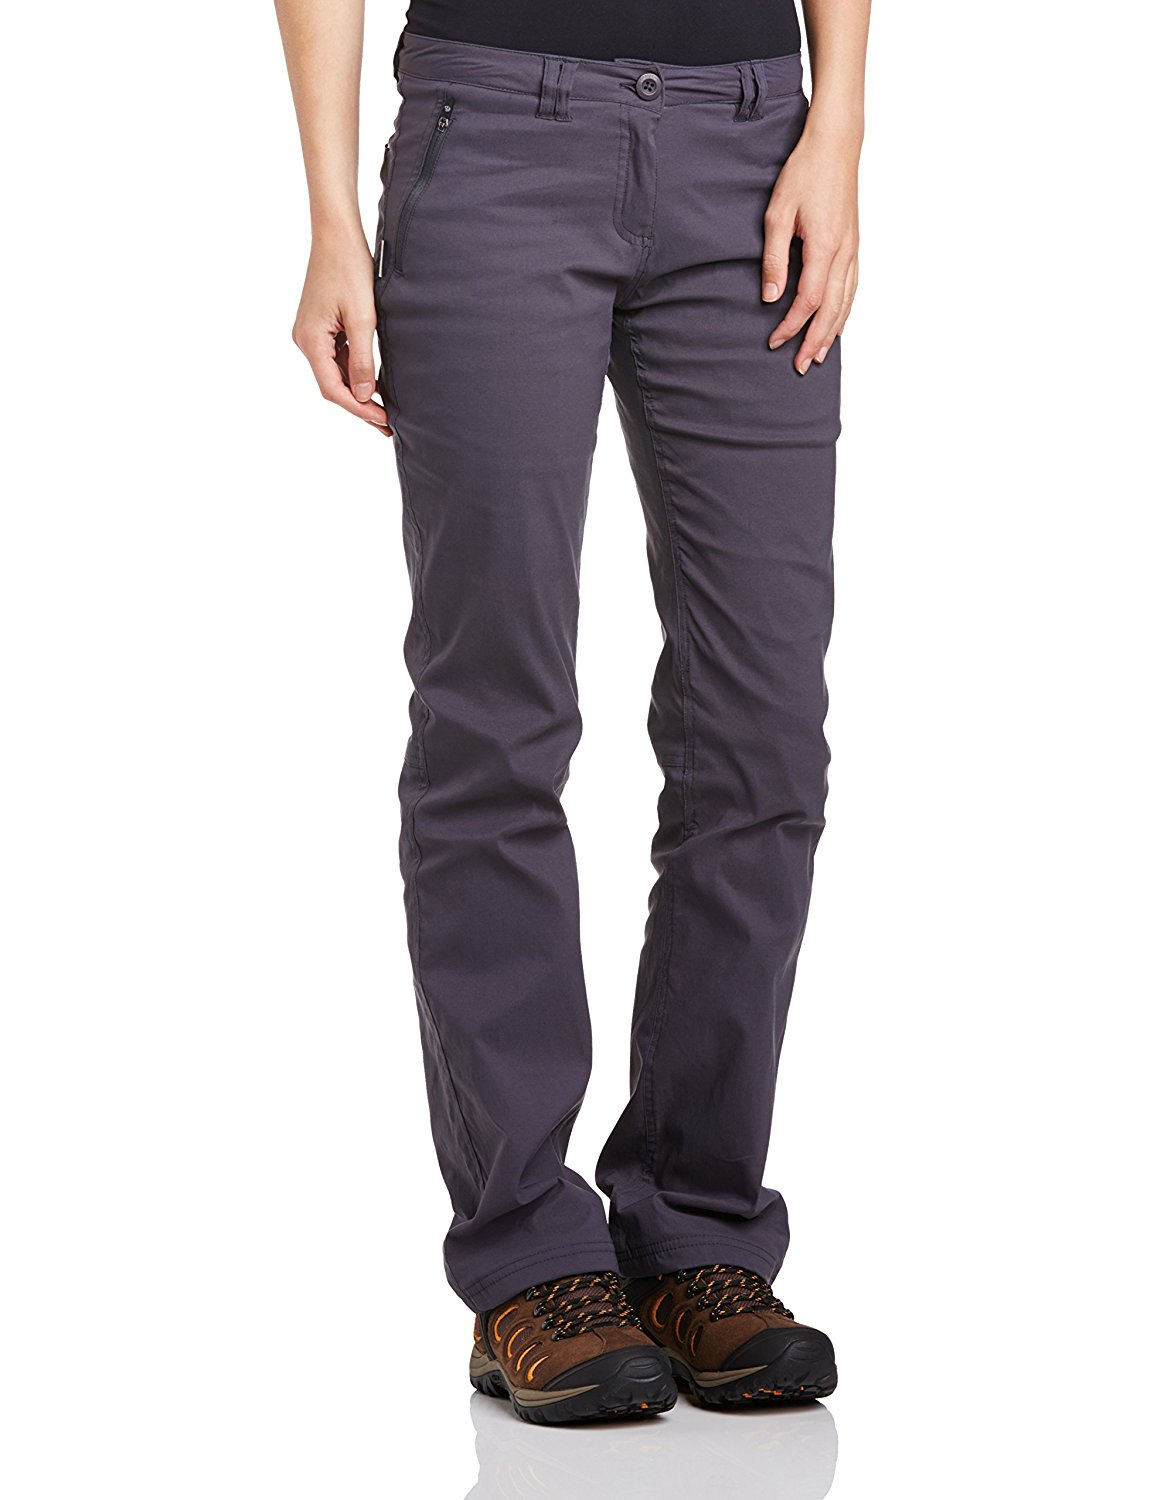 Craghoppers Womens Kiwi Pro Stretch Lined Trouser Regular Leg